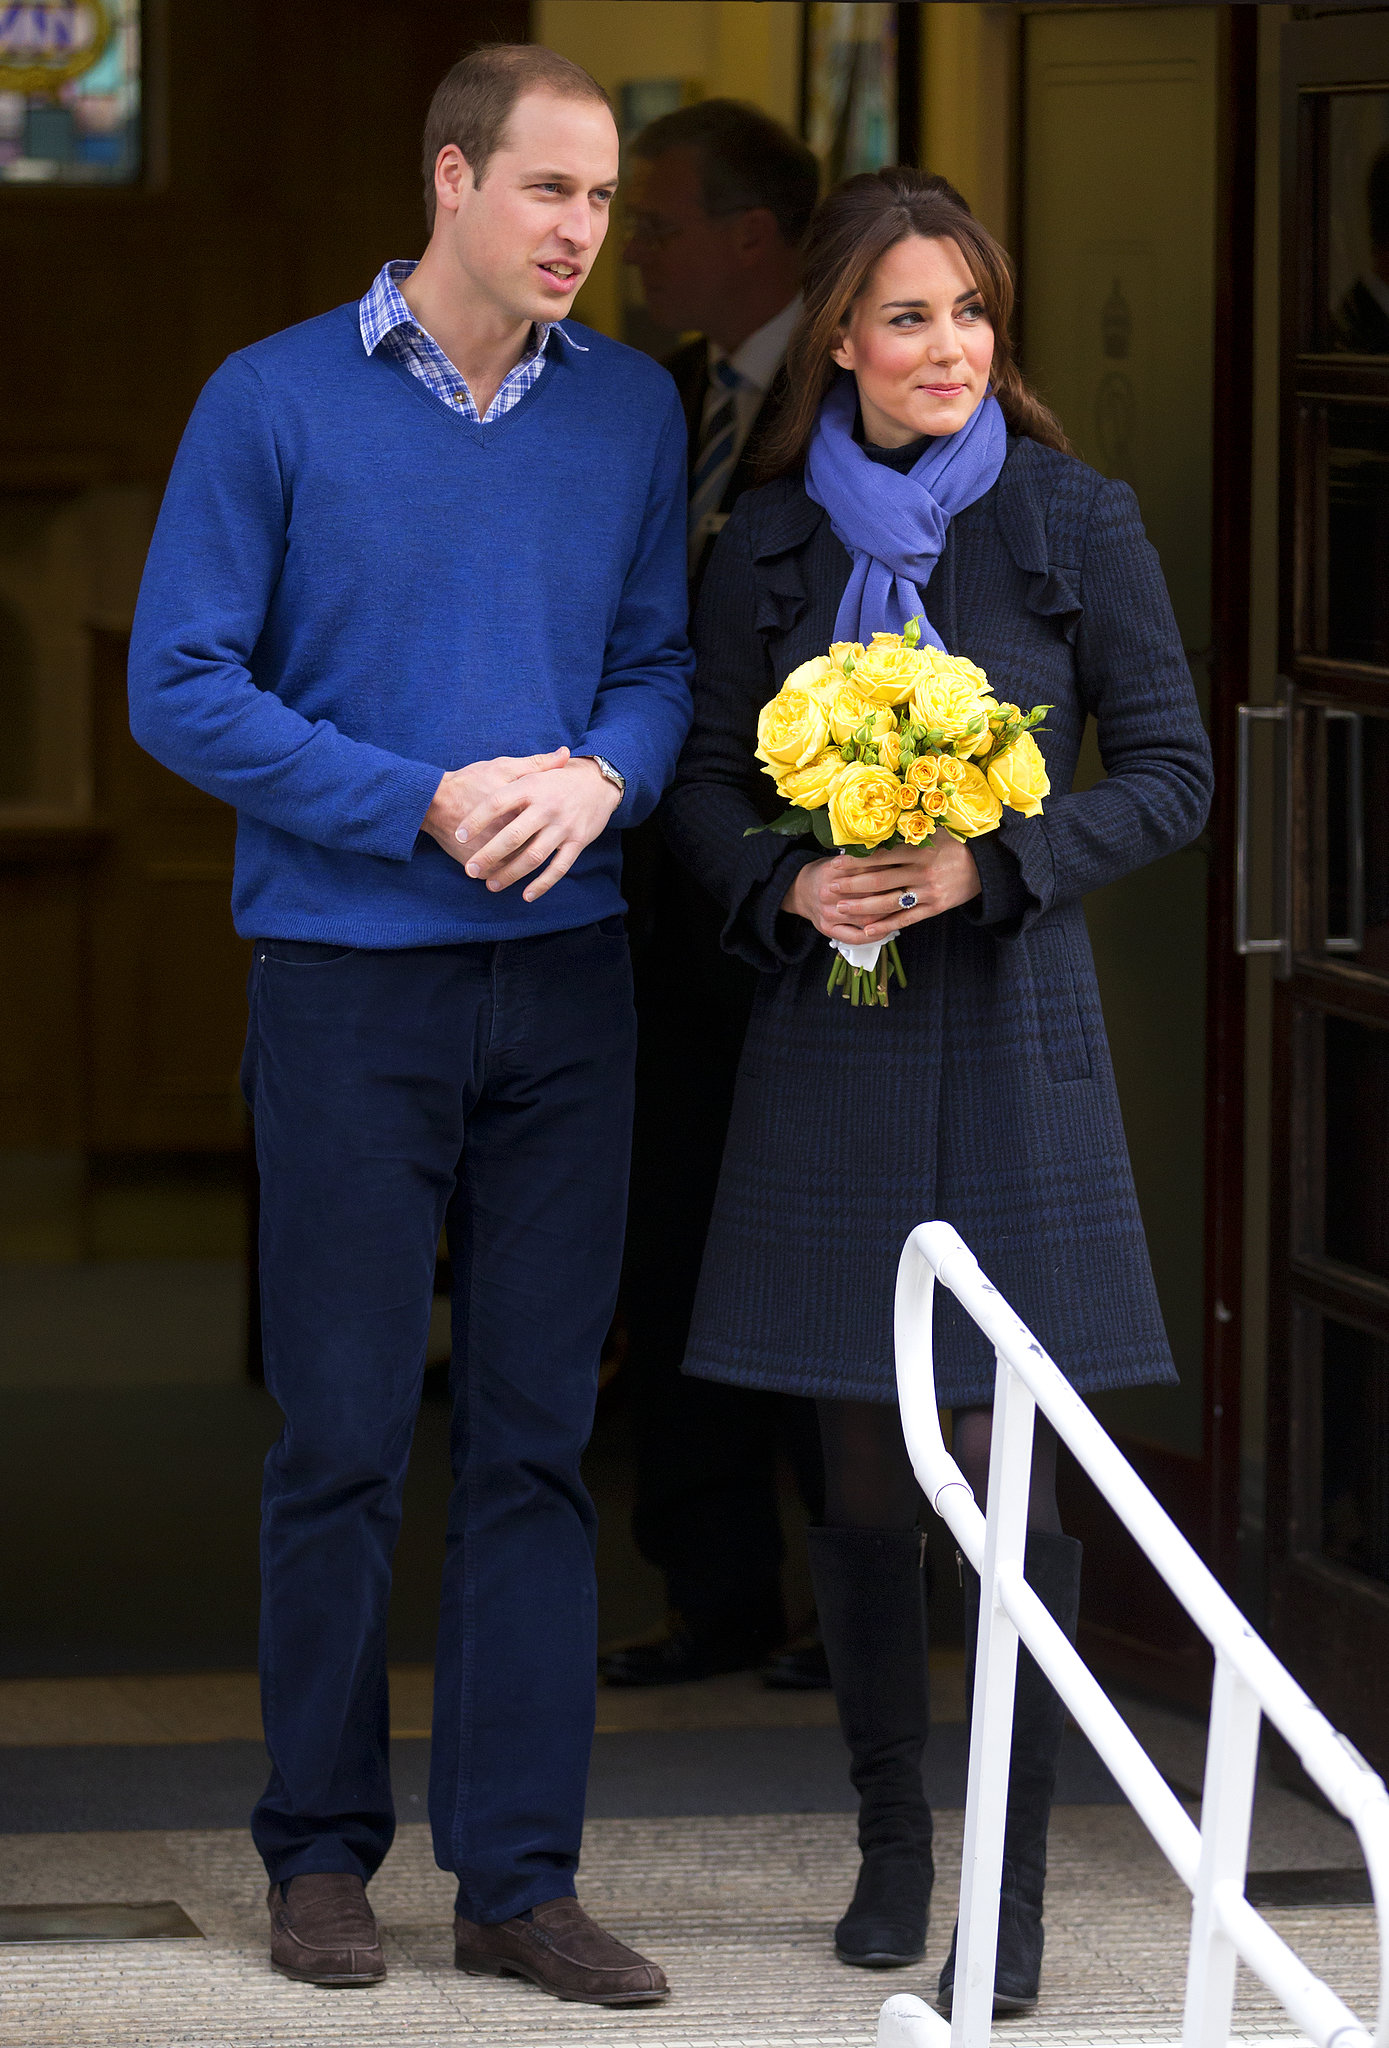 After being admitted to the King Edward VII Hospital for acute morning sickness, Kate got picked up by William to go home in December 2012.